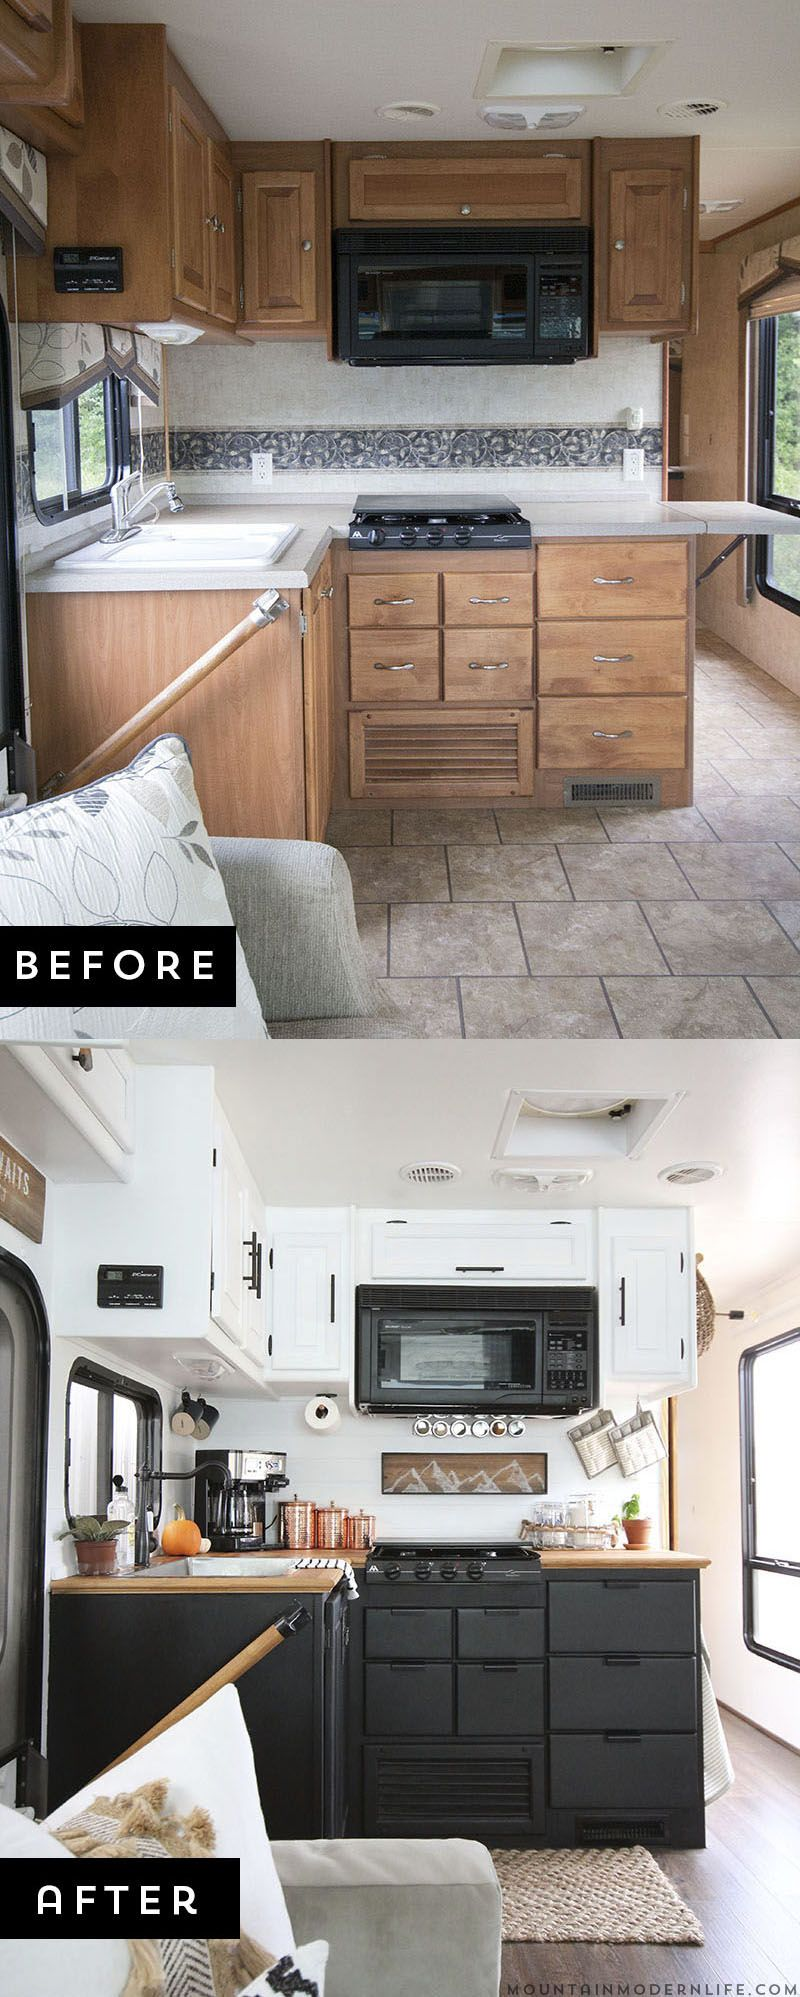 rv kitchen renovation rv life pinterest roulotte caravane et camping. Black Bedroom Furniture Sets. Home Design Ideas